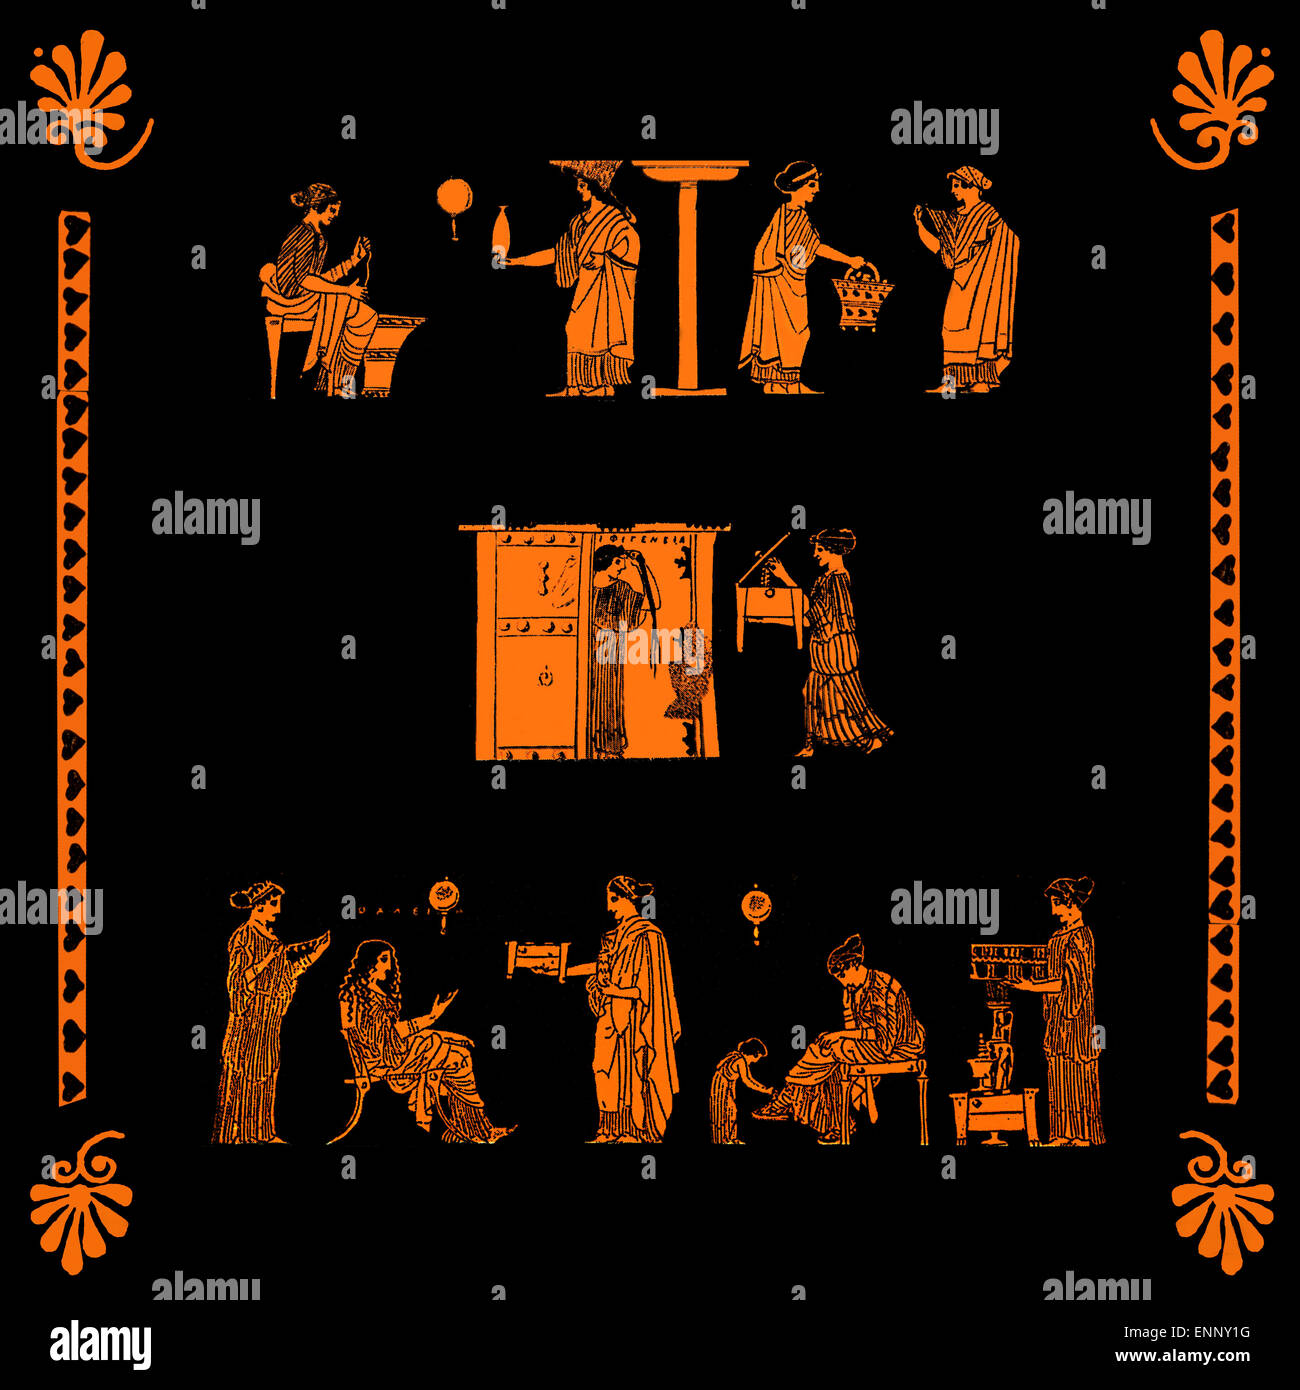 Women busy with domestic chores and activities at home, collage from antique Greek vase pictures - Stock Image